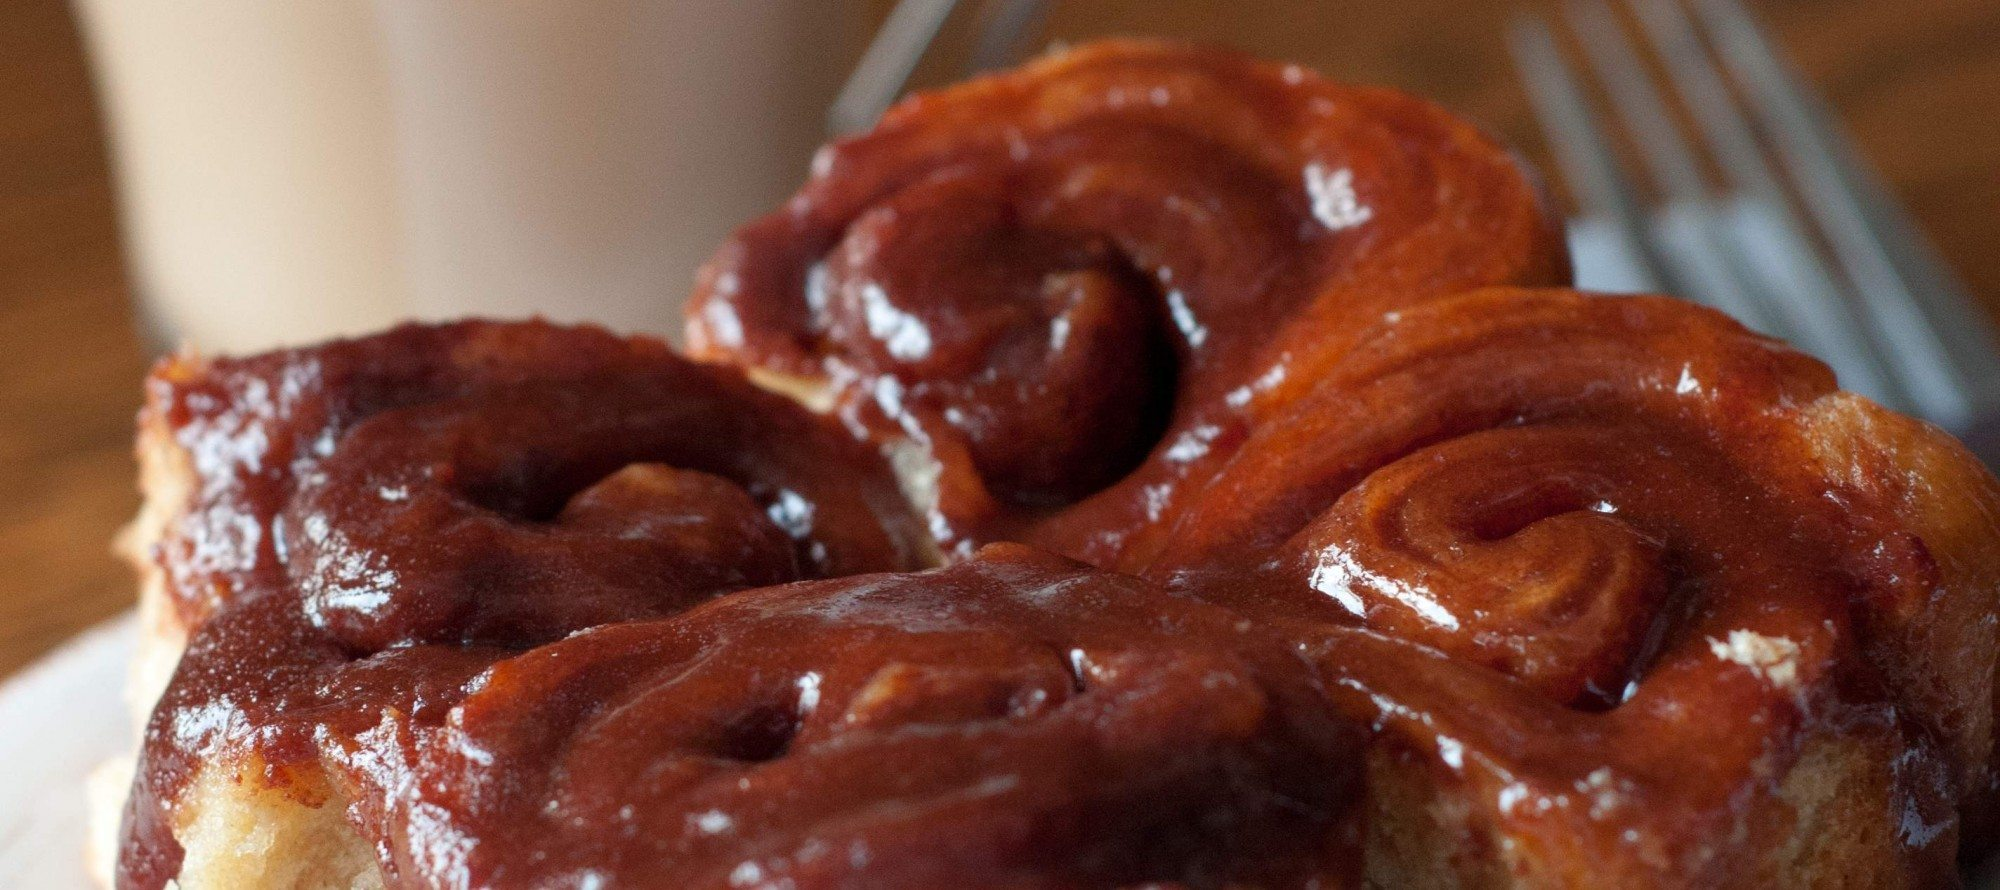 STICKY BUN OF THE DAY! Gooey organic goodness from Cinnamon Sentiments